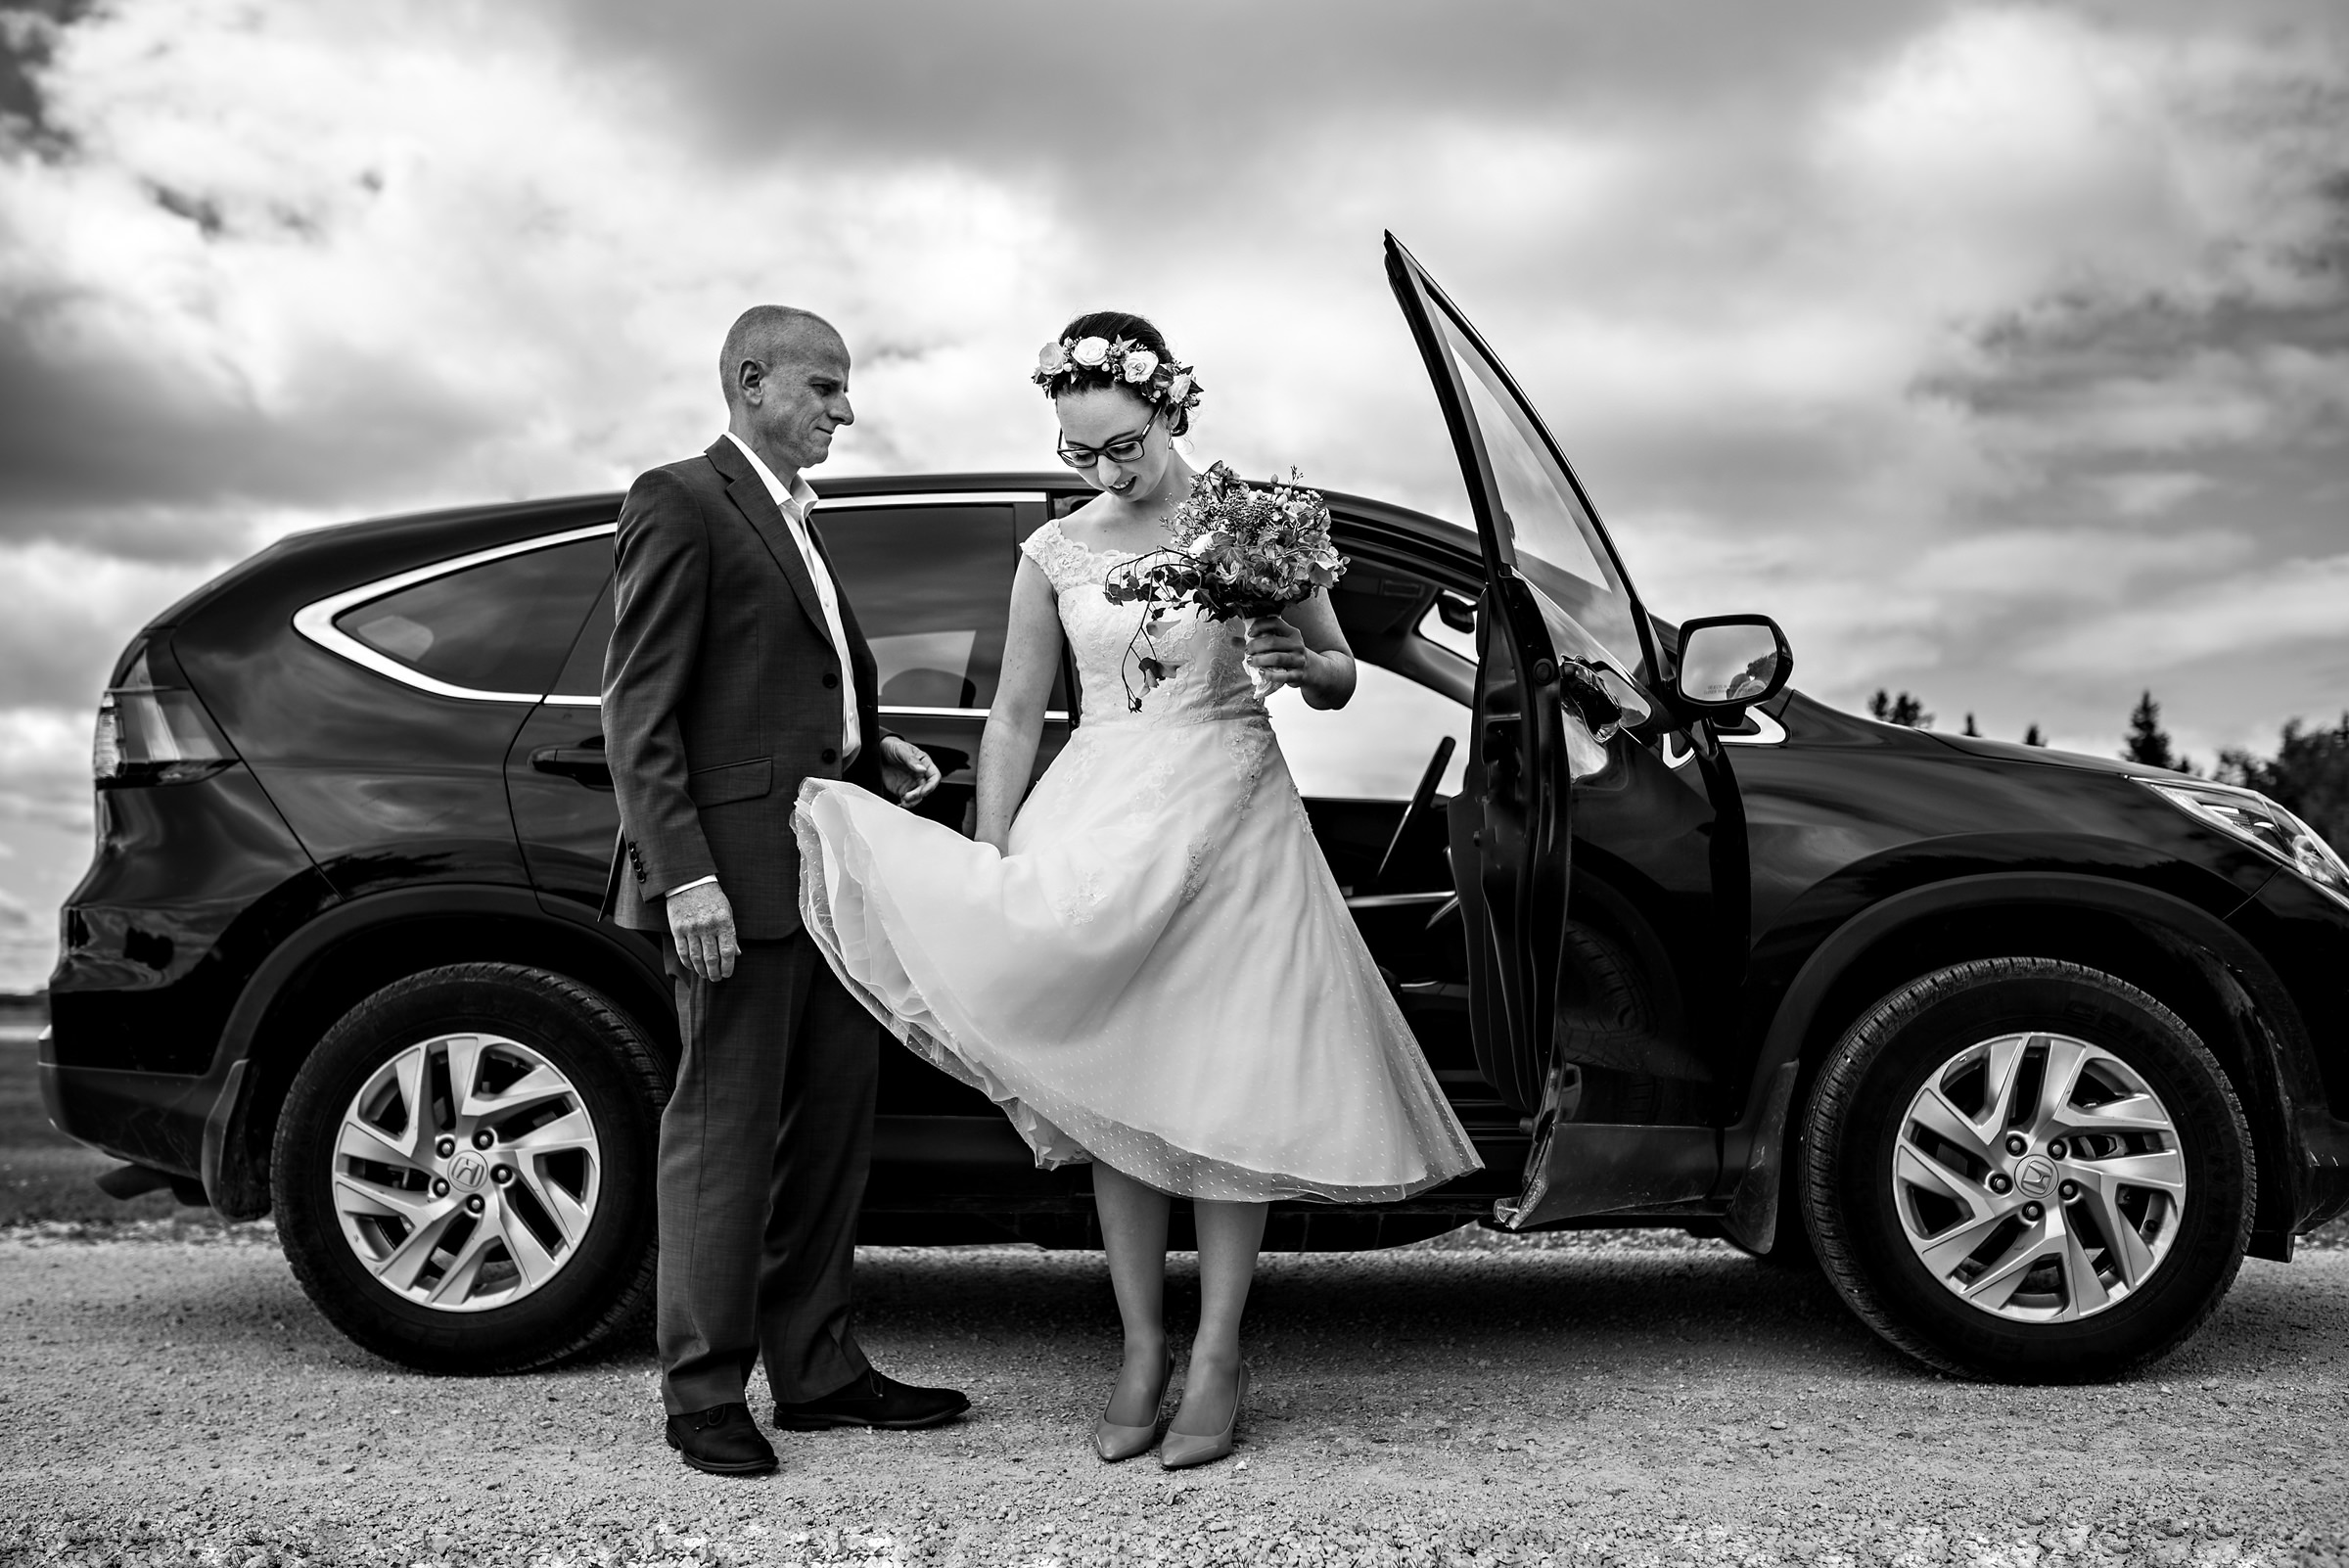 bride-wearing-floral-crown-and-vintage-short-dress-gets-out-of-car-moore-photography